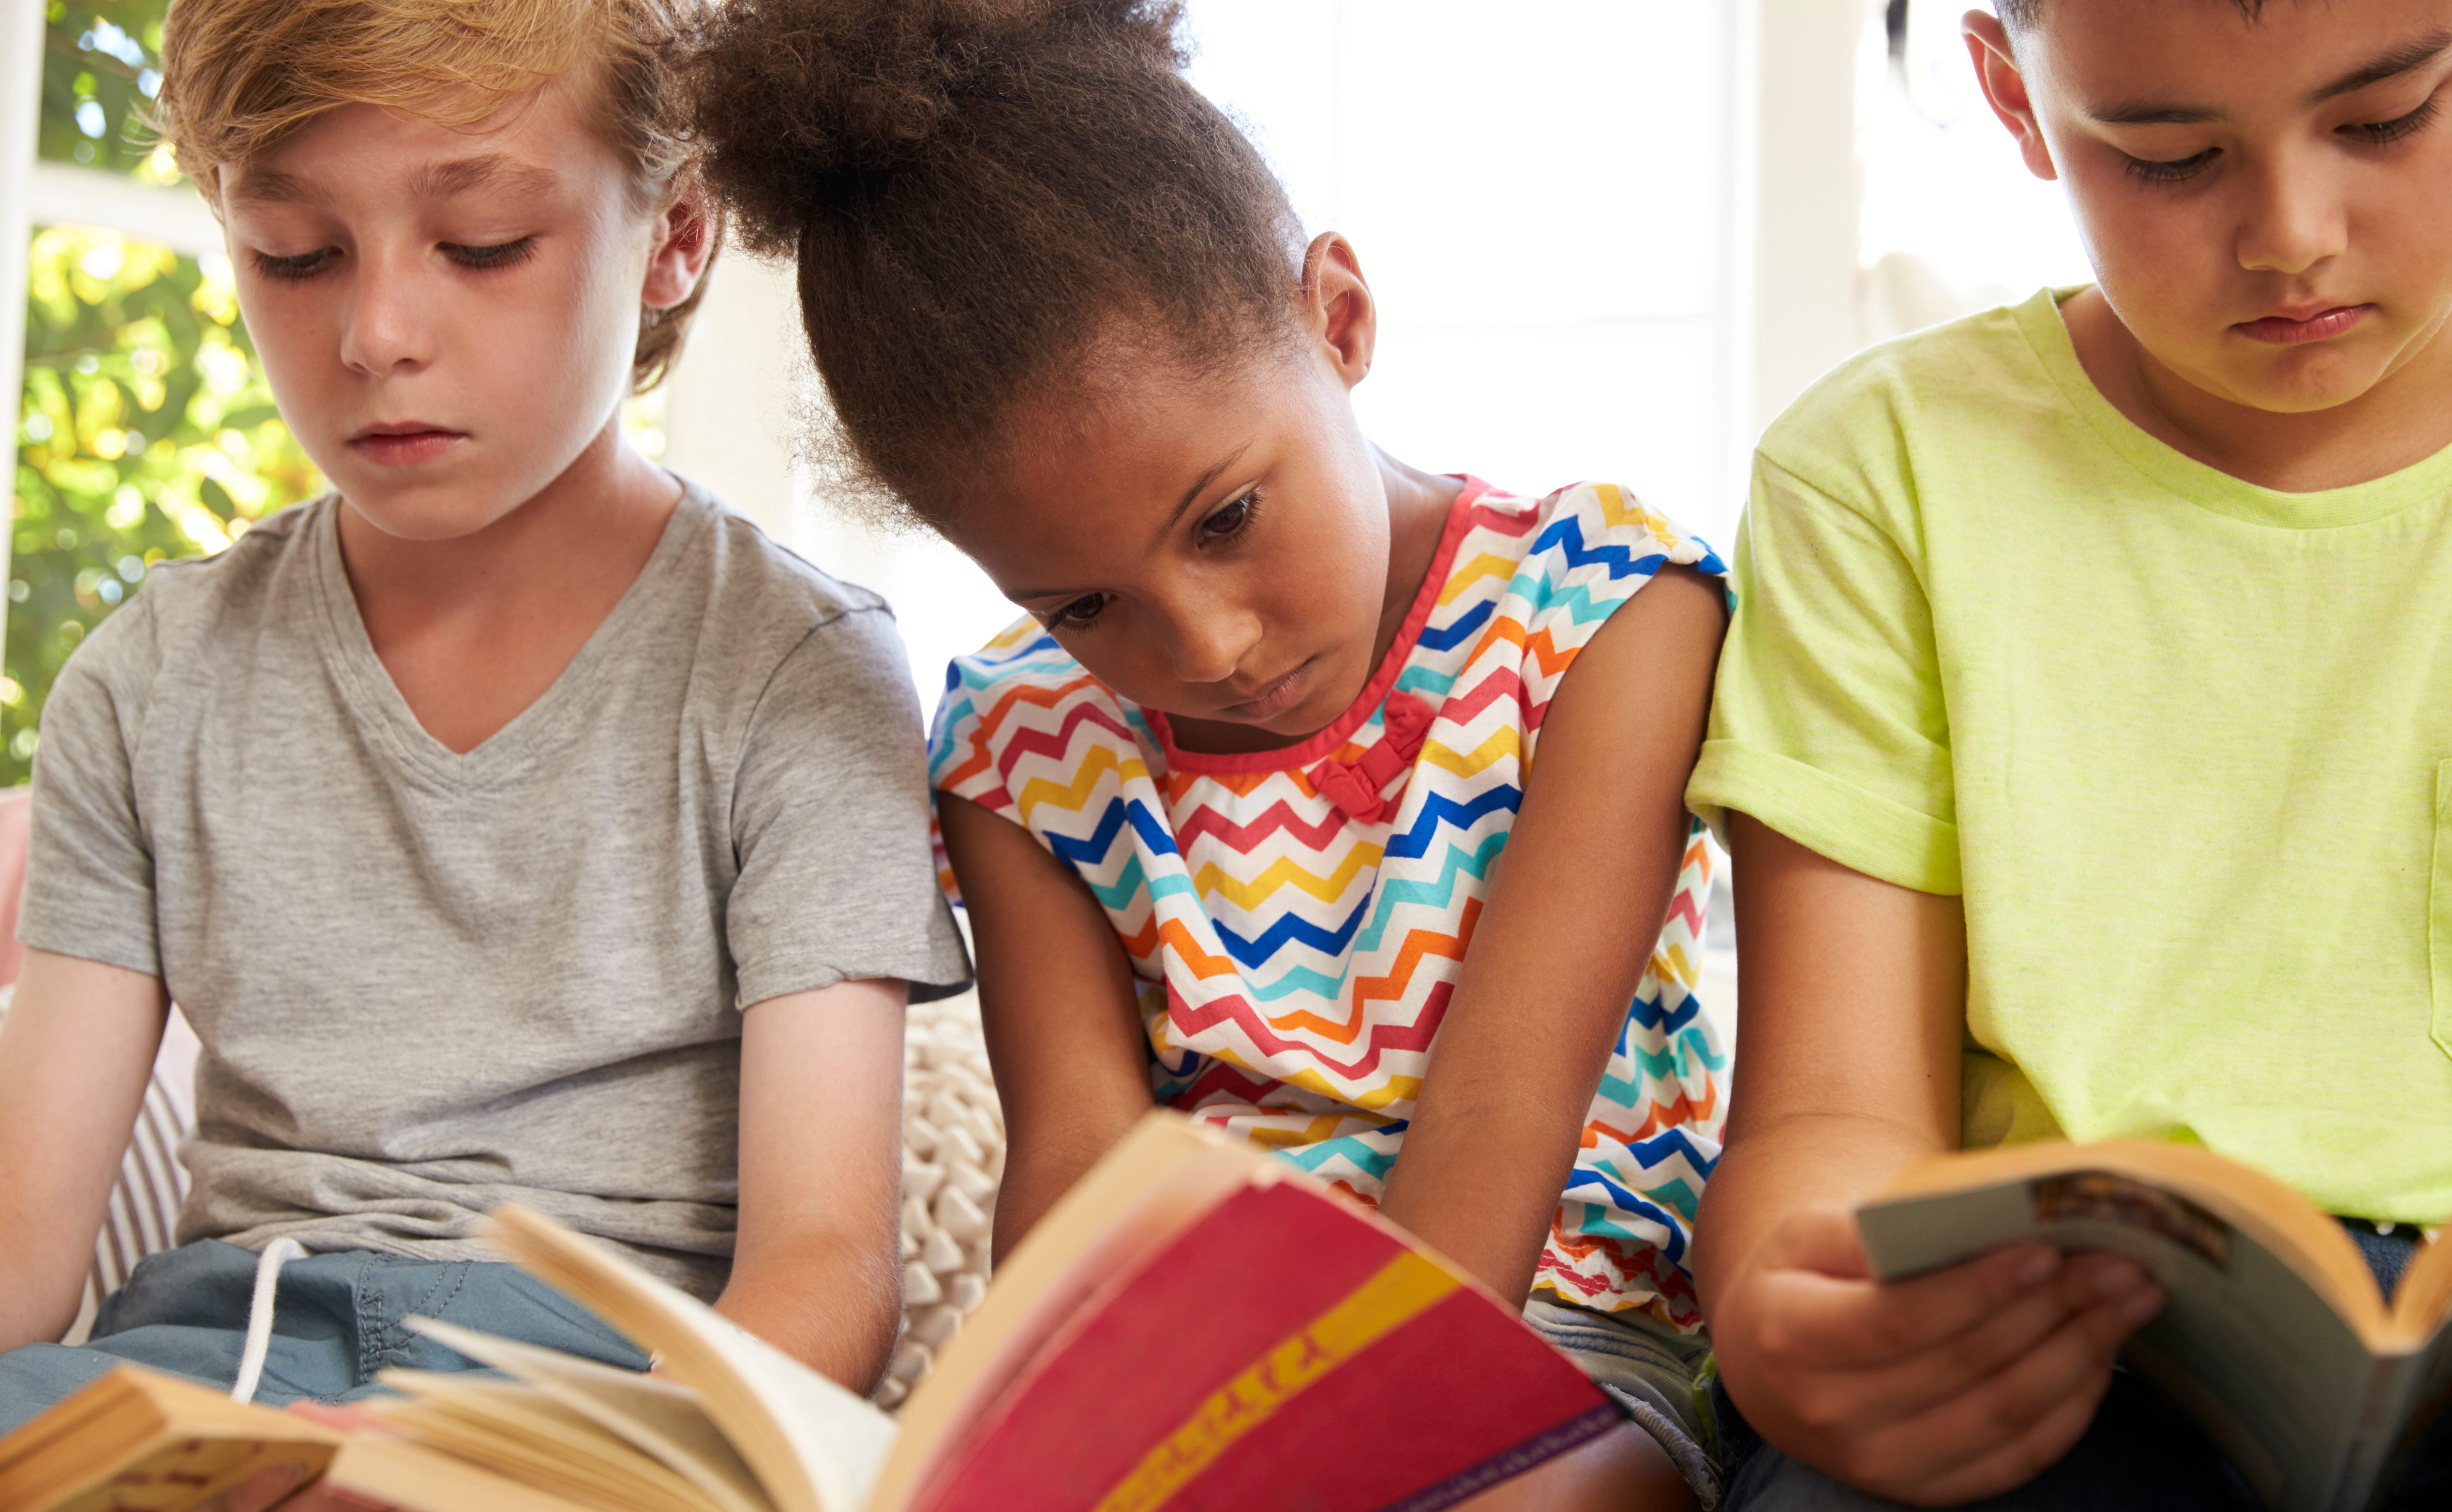 Parents Can Learn How To Prevent >> 5 Tips Parents Can Use To Prevent Summer Reading Loss Tempe In Motion